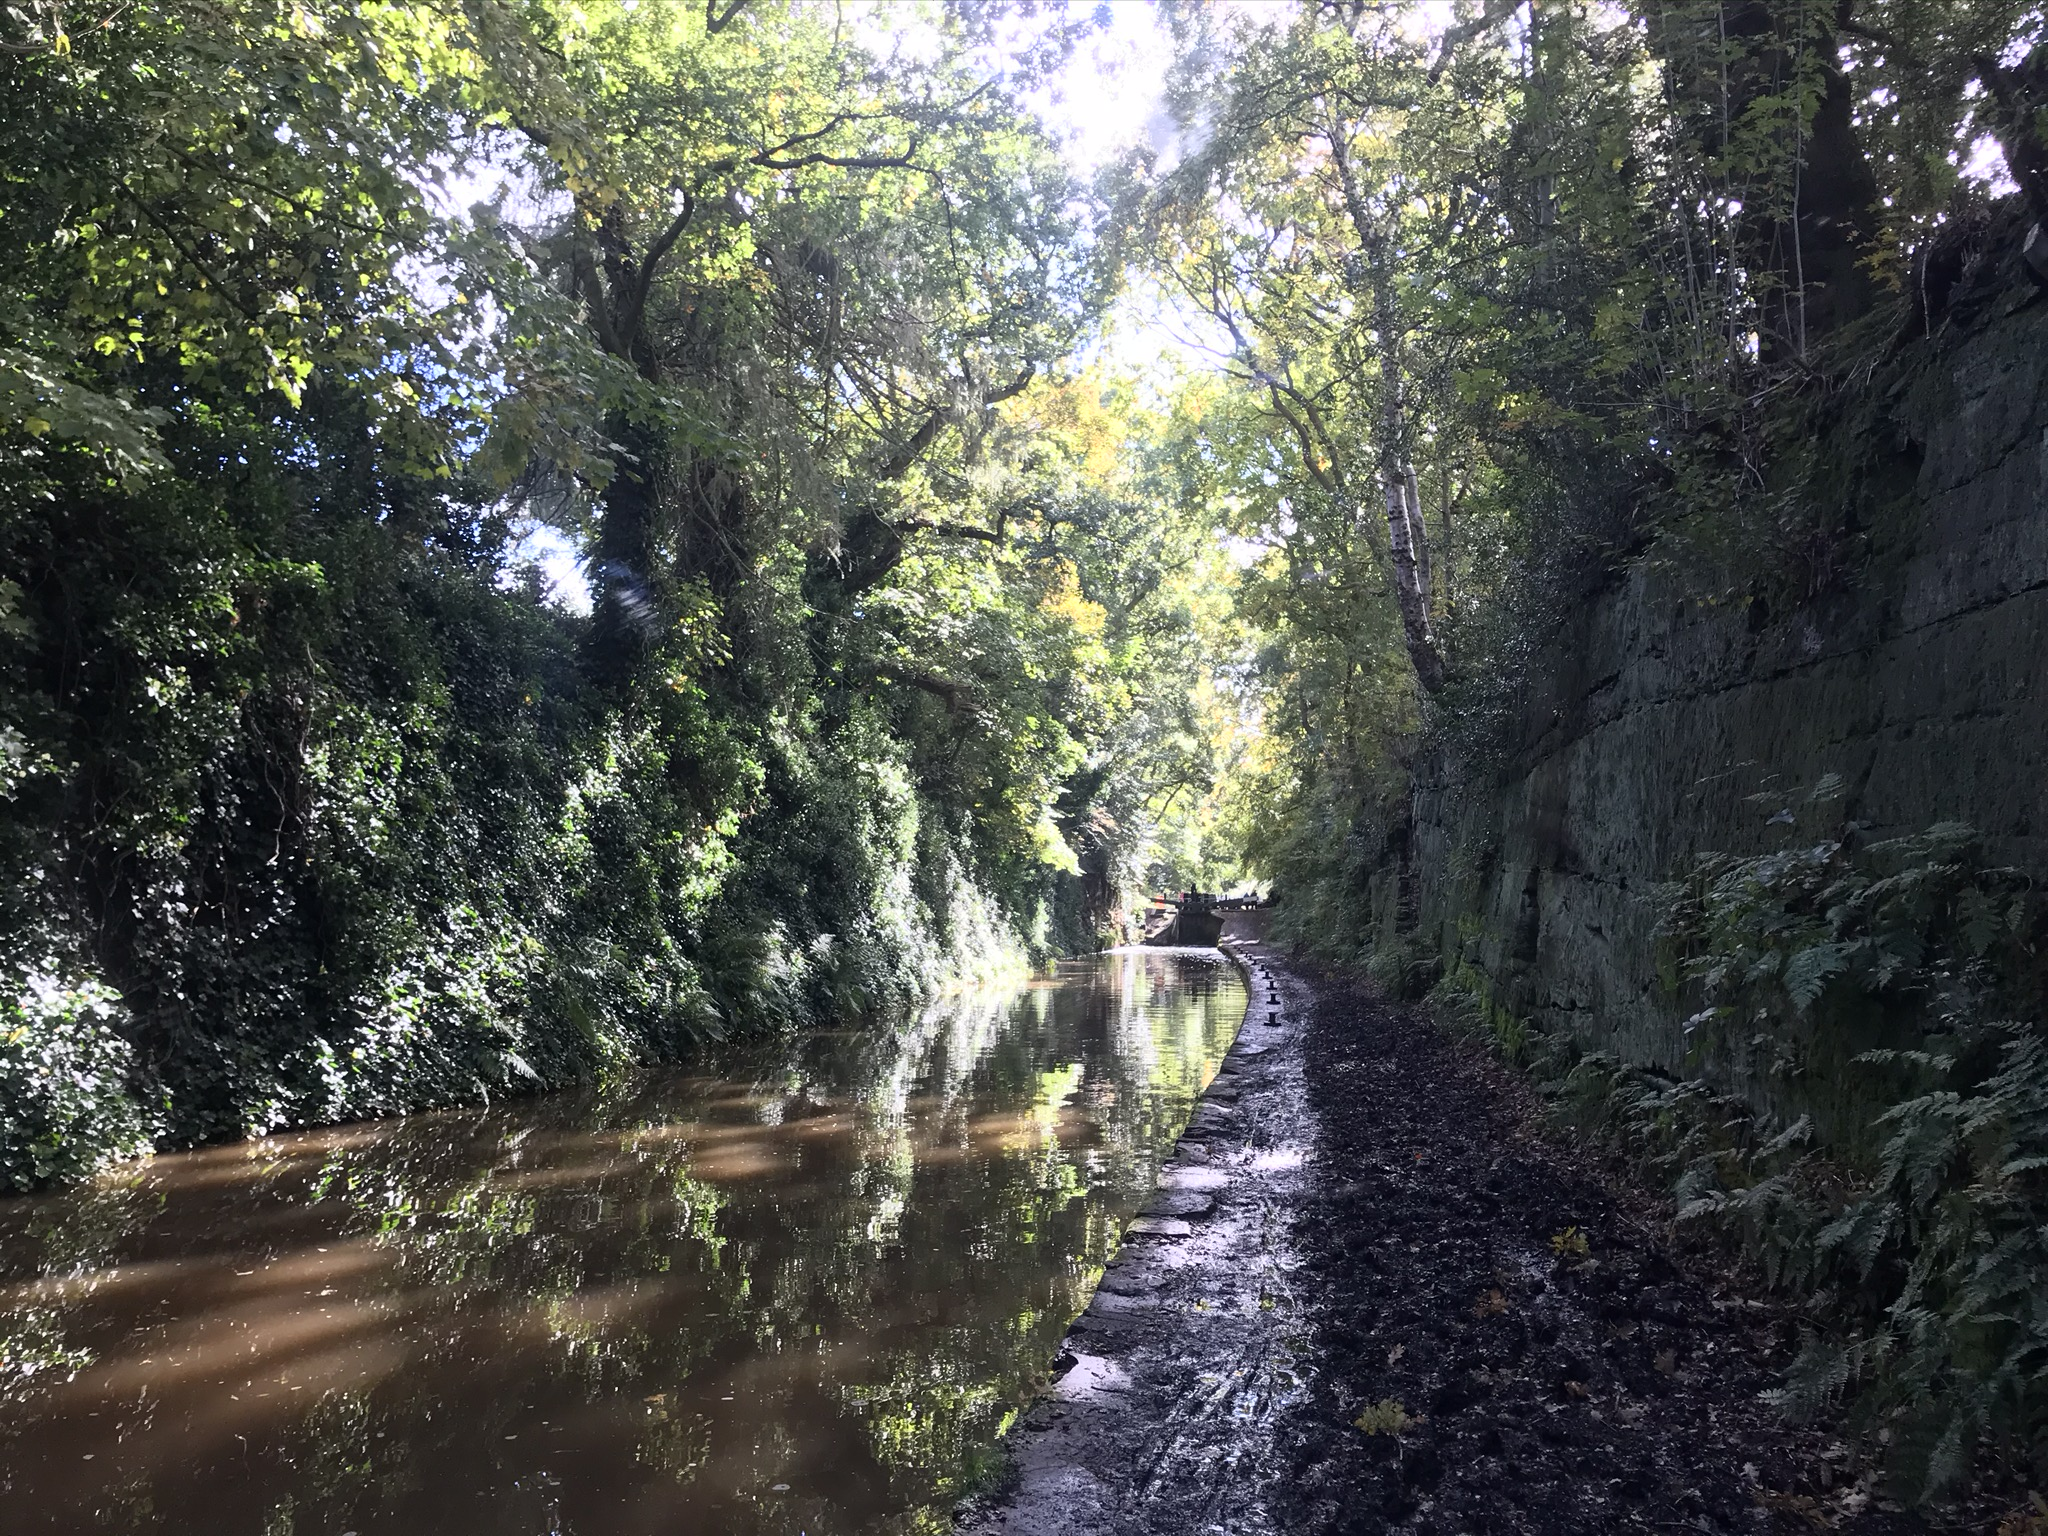 A muddy towpath next to a canal cut deep into the rock. Tall trees overhang the cutting and the sun is glinting through the trees creating patches of light on the brown water.